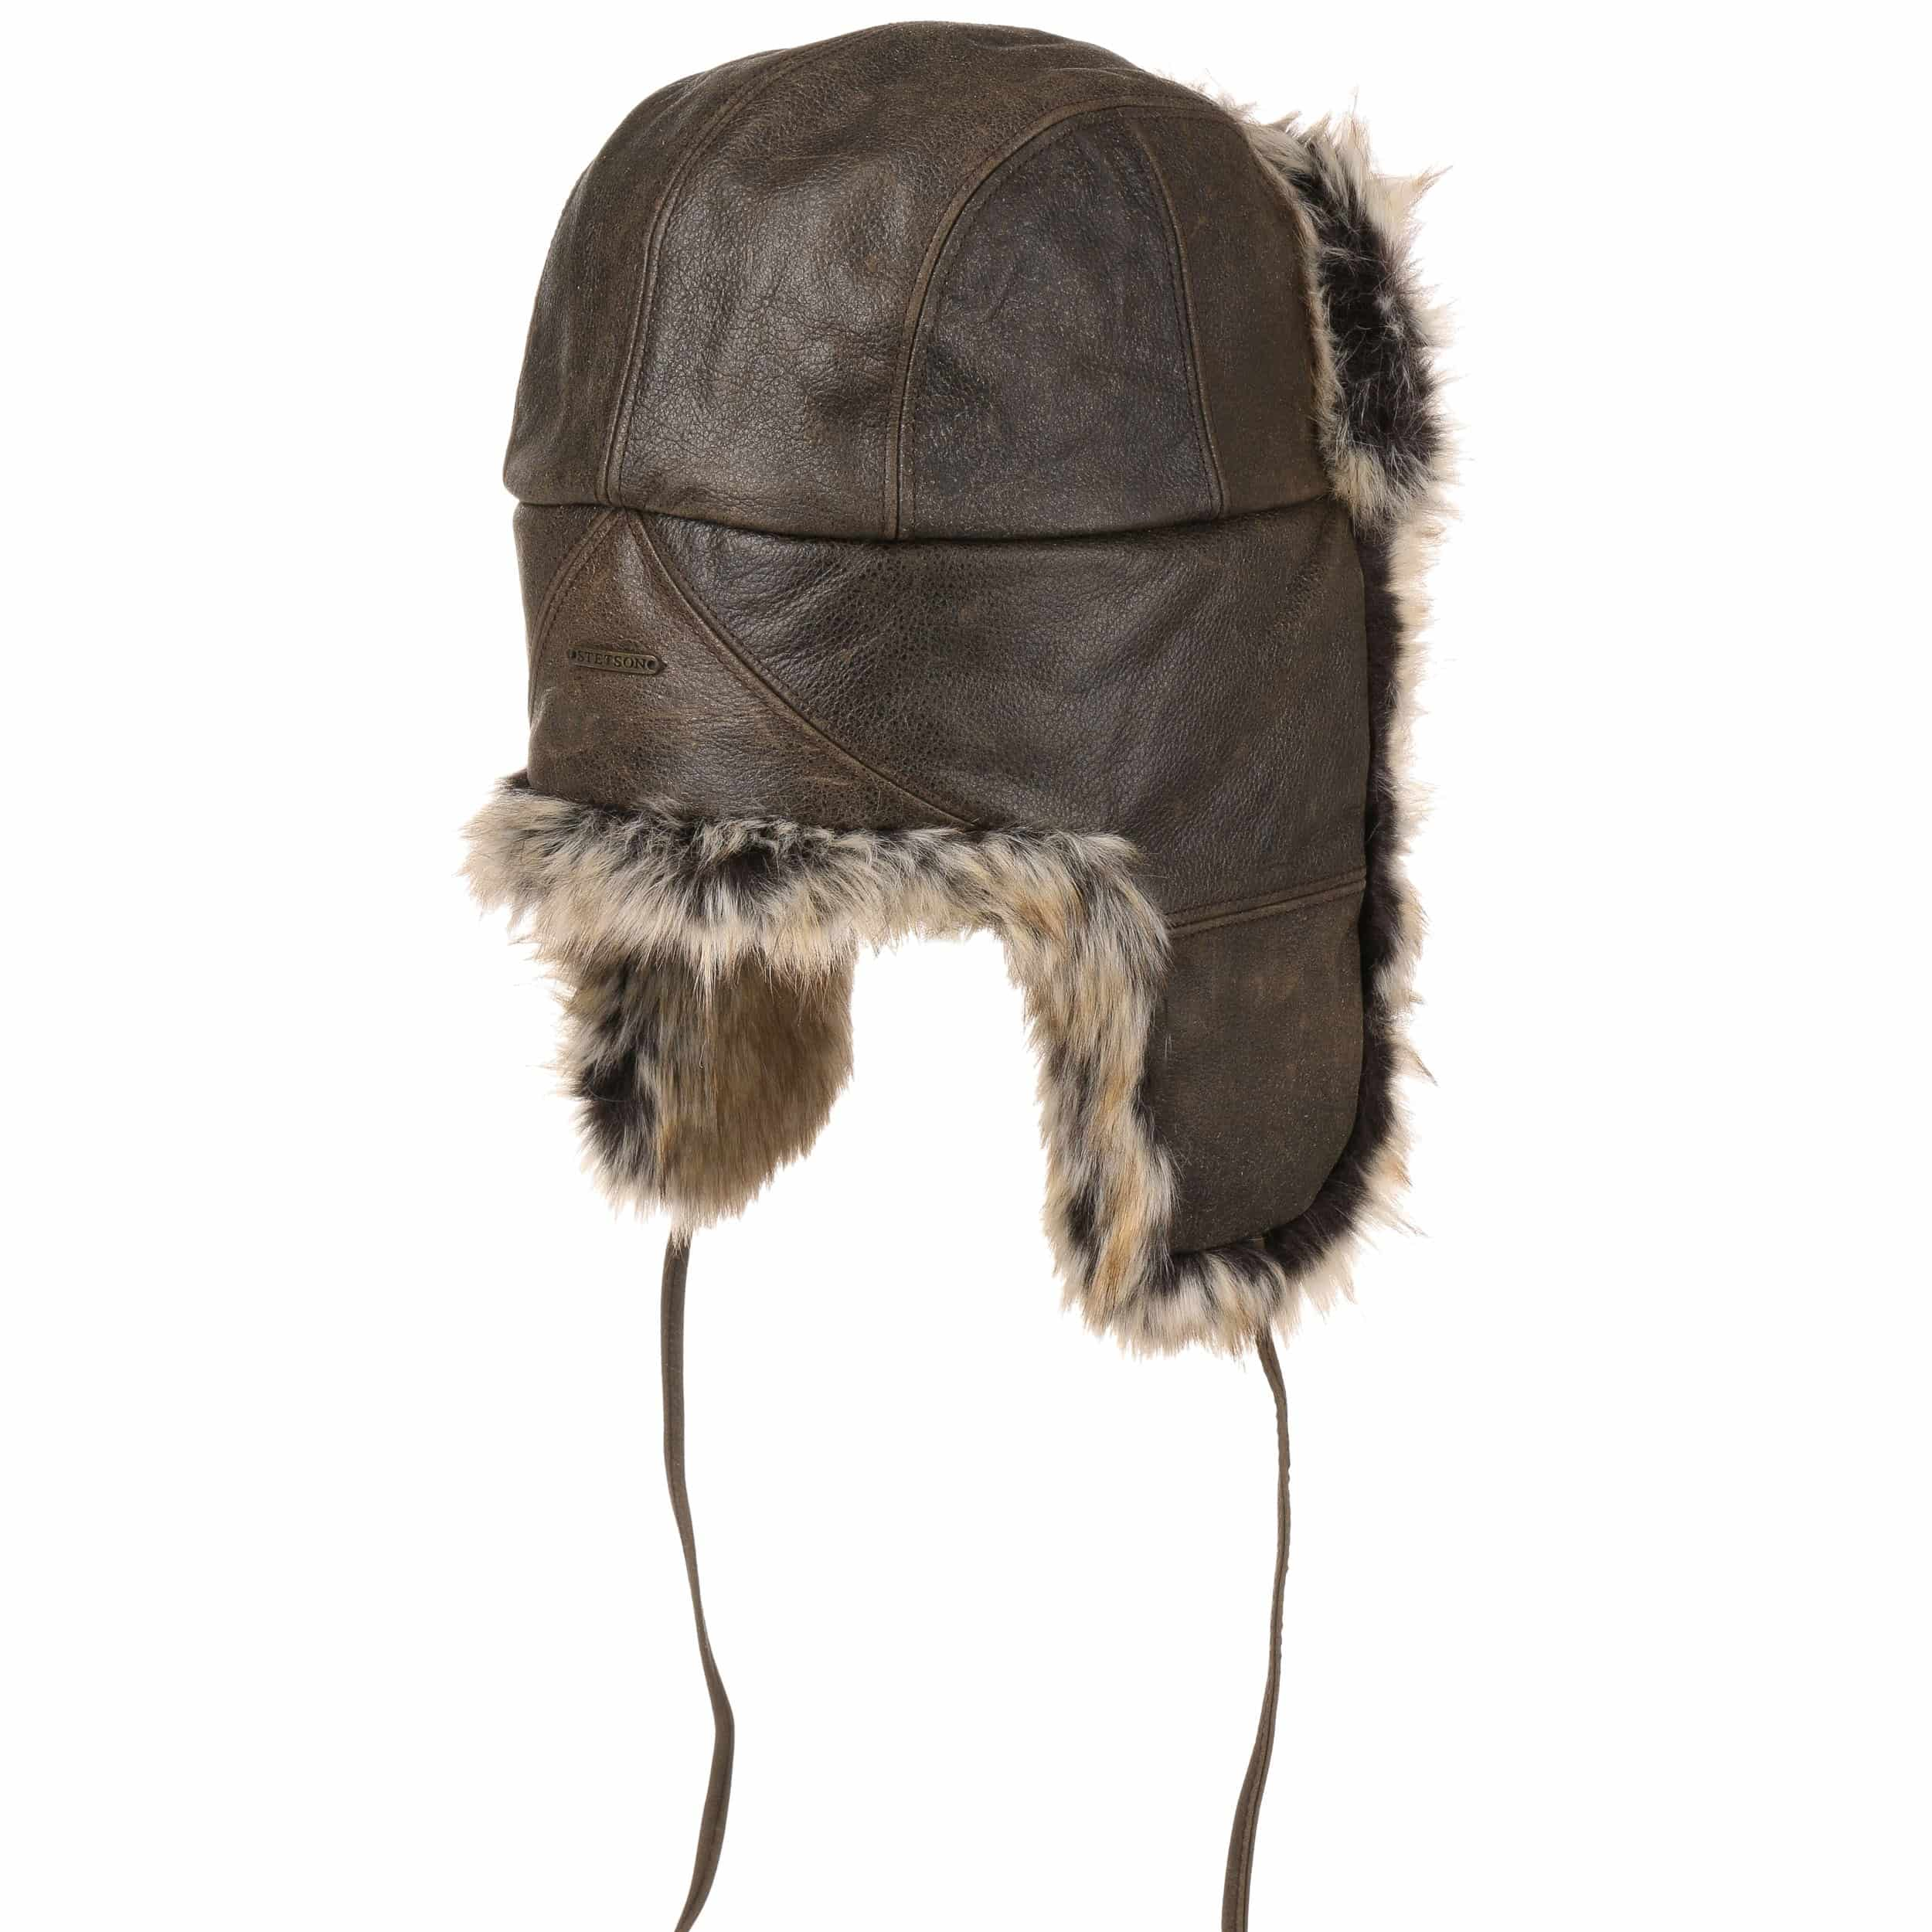 ... Alaska Cowhide Aviator Hat by Stetson - brown 3 ... 599e5d5c5fdd